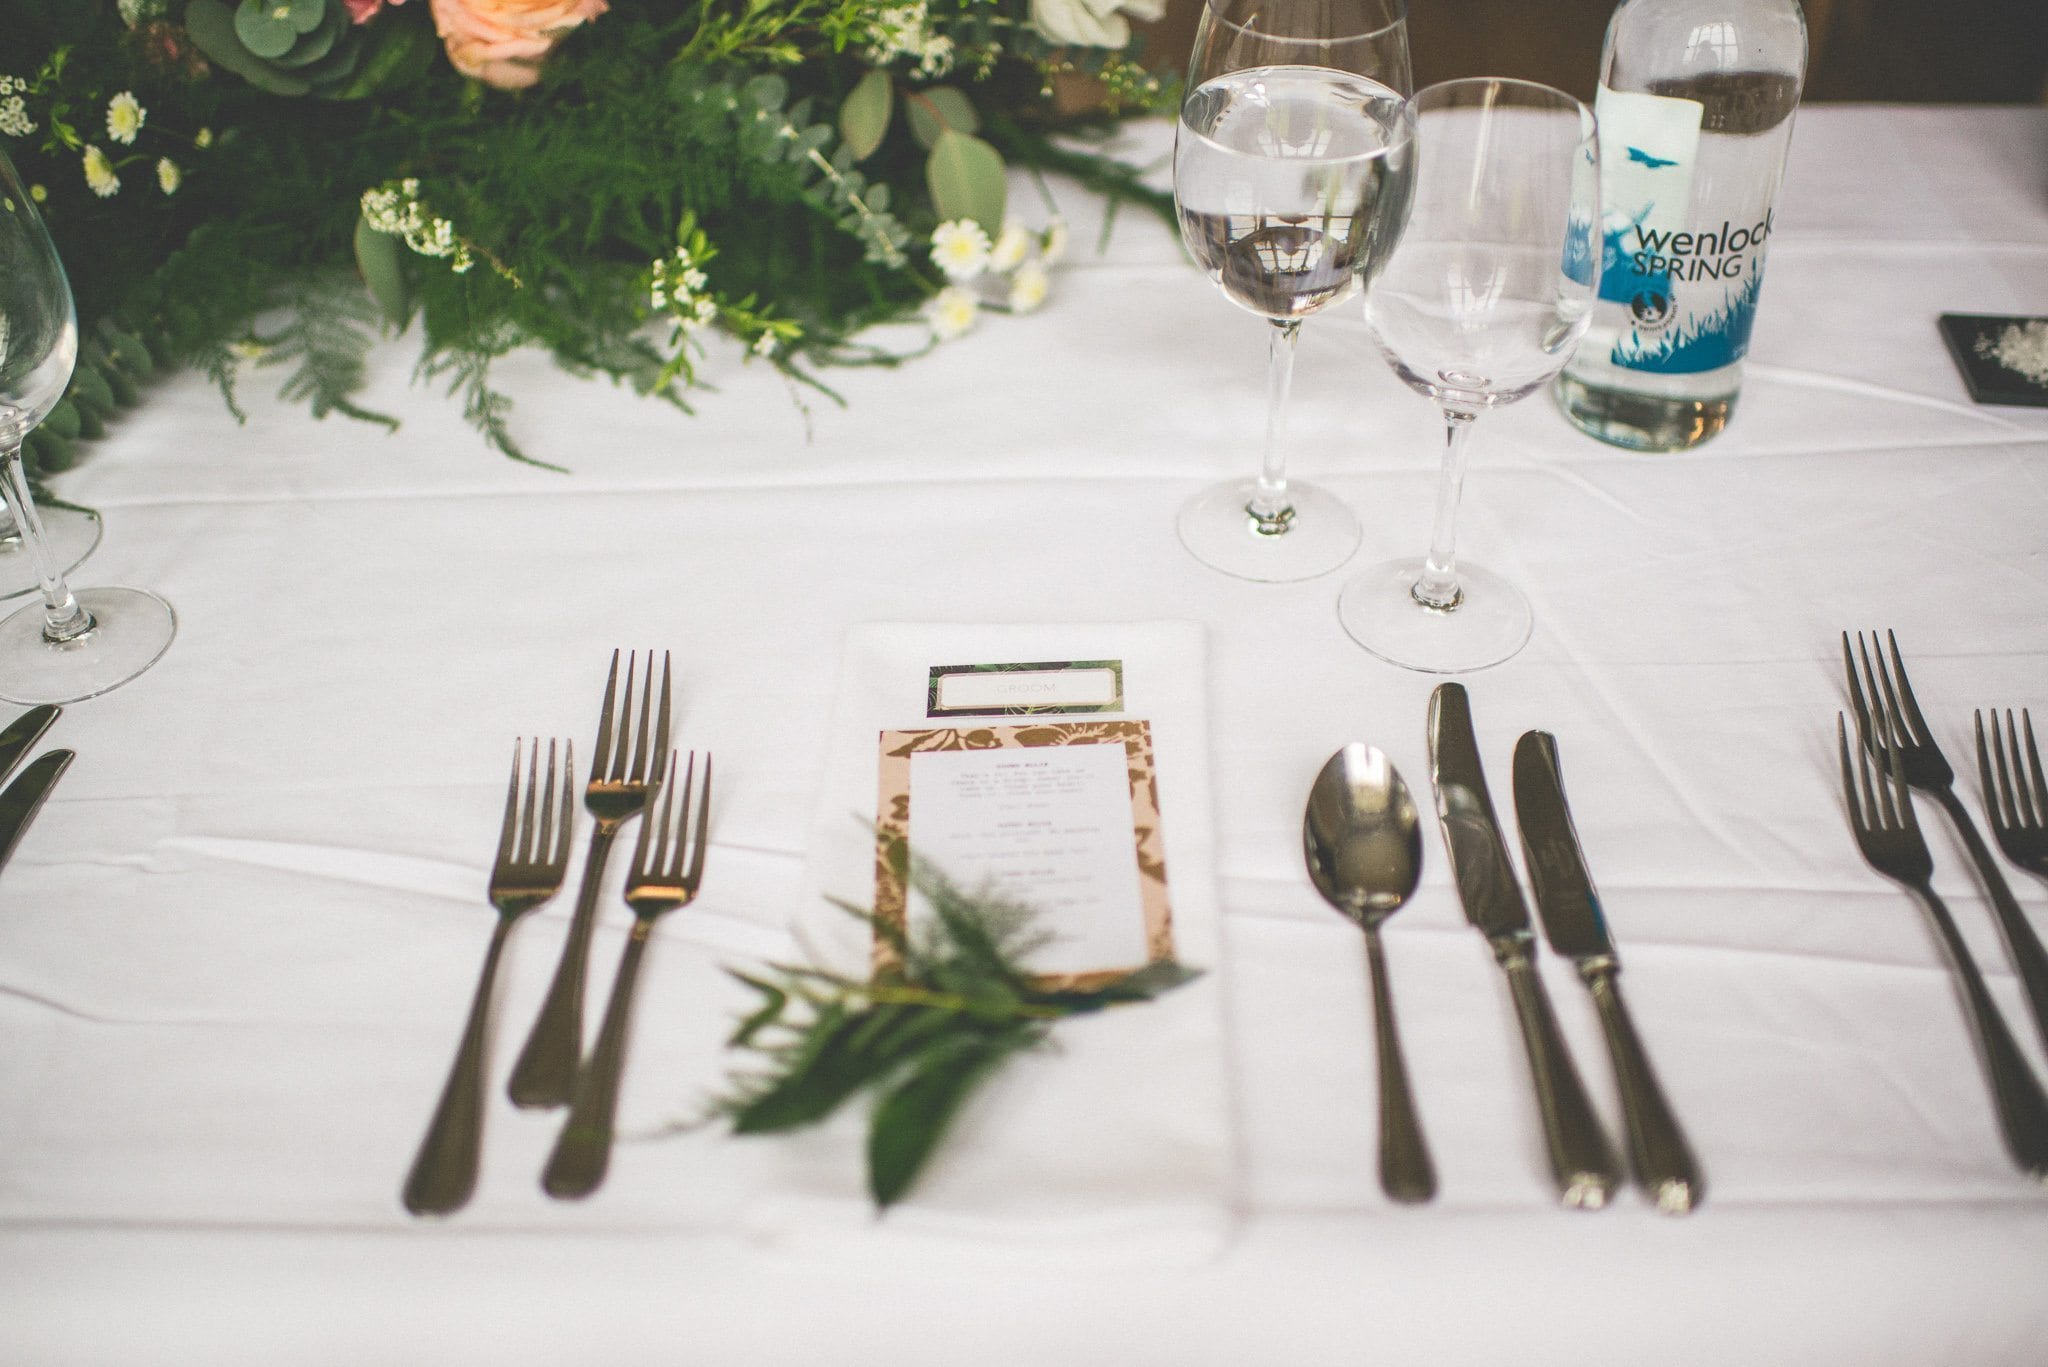 A close up of one of the place settings, complete with fern